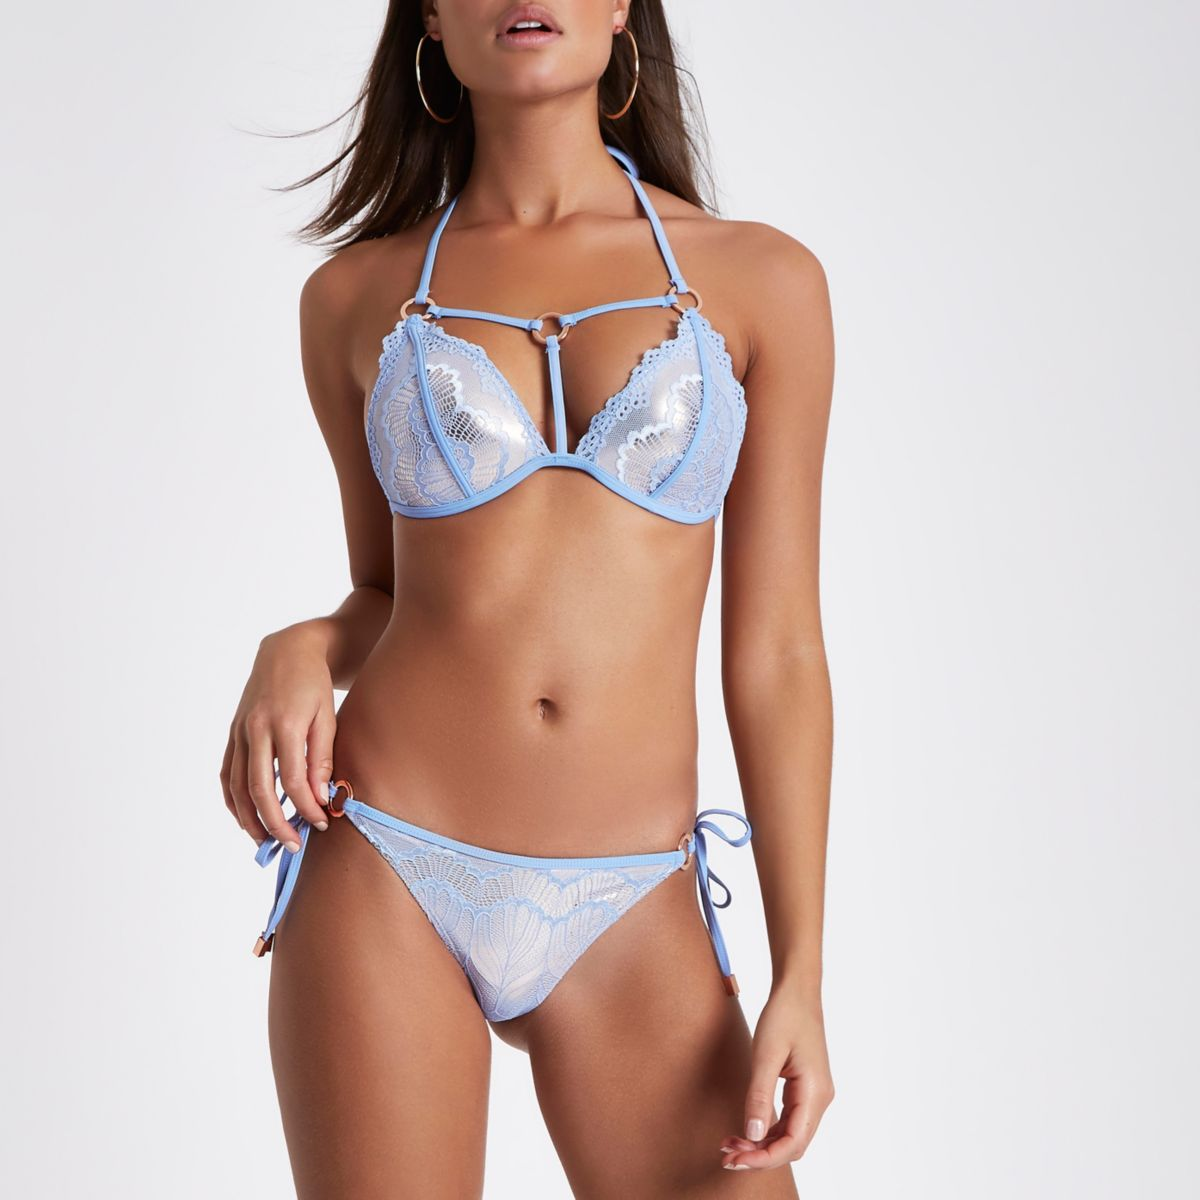 Bikinihose in Blau-Metallic zum Binden